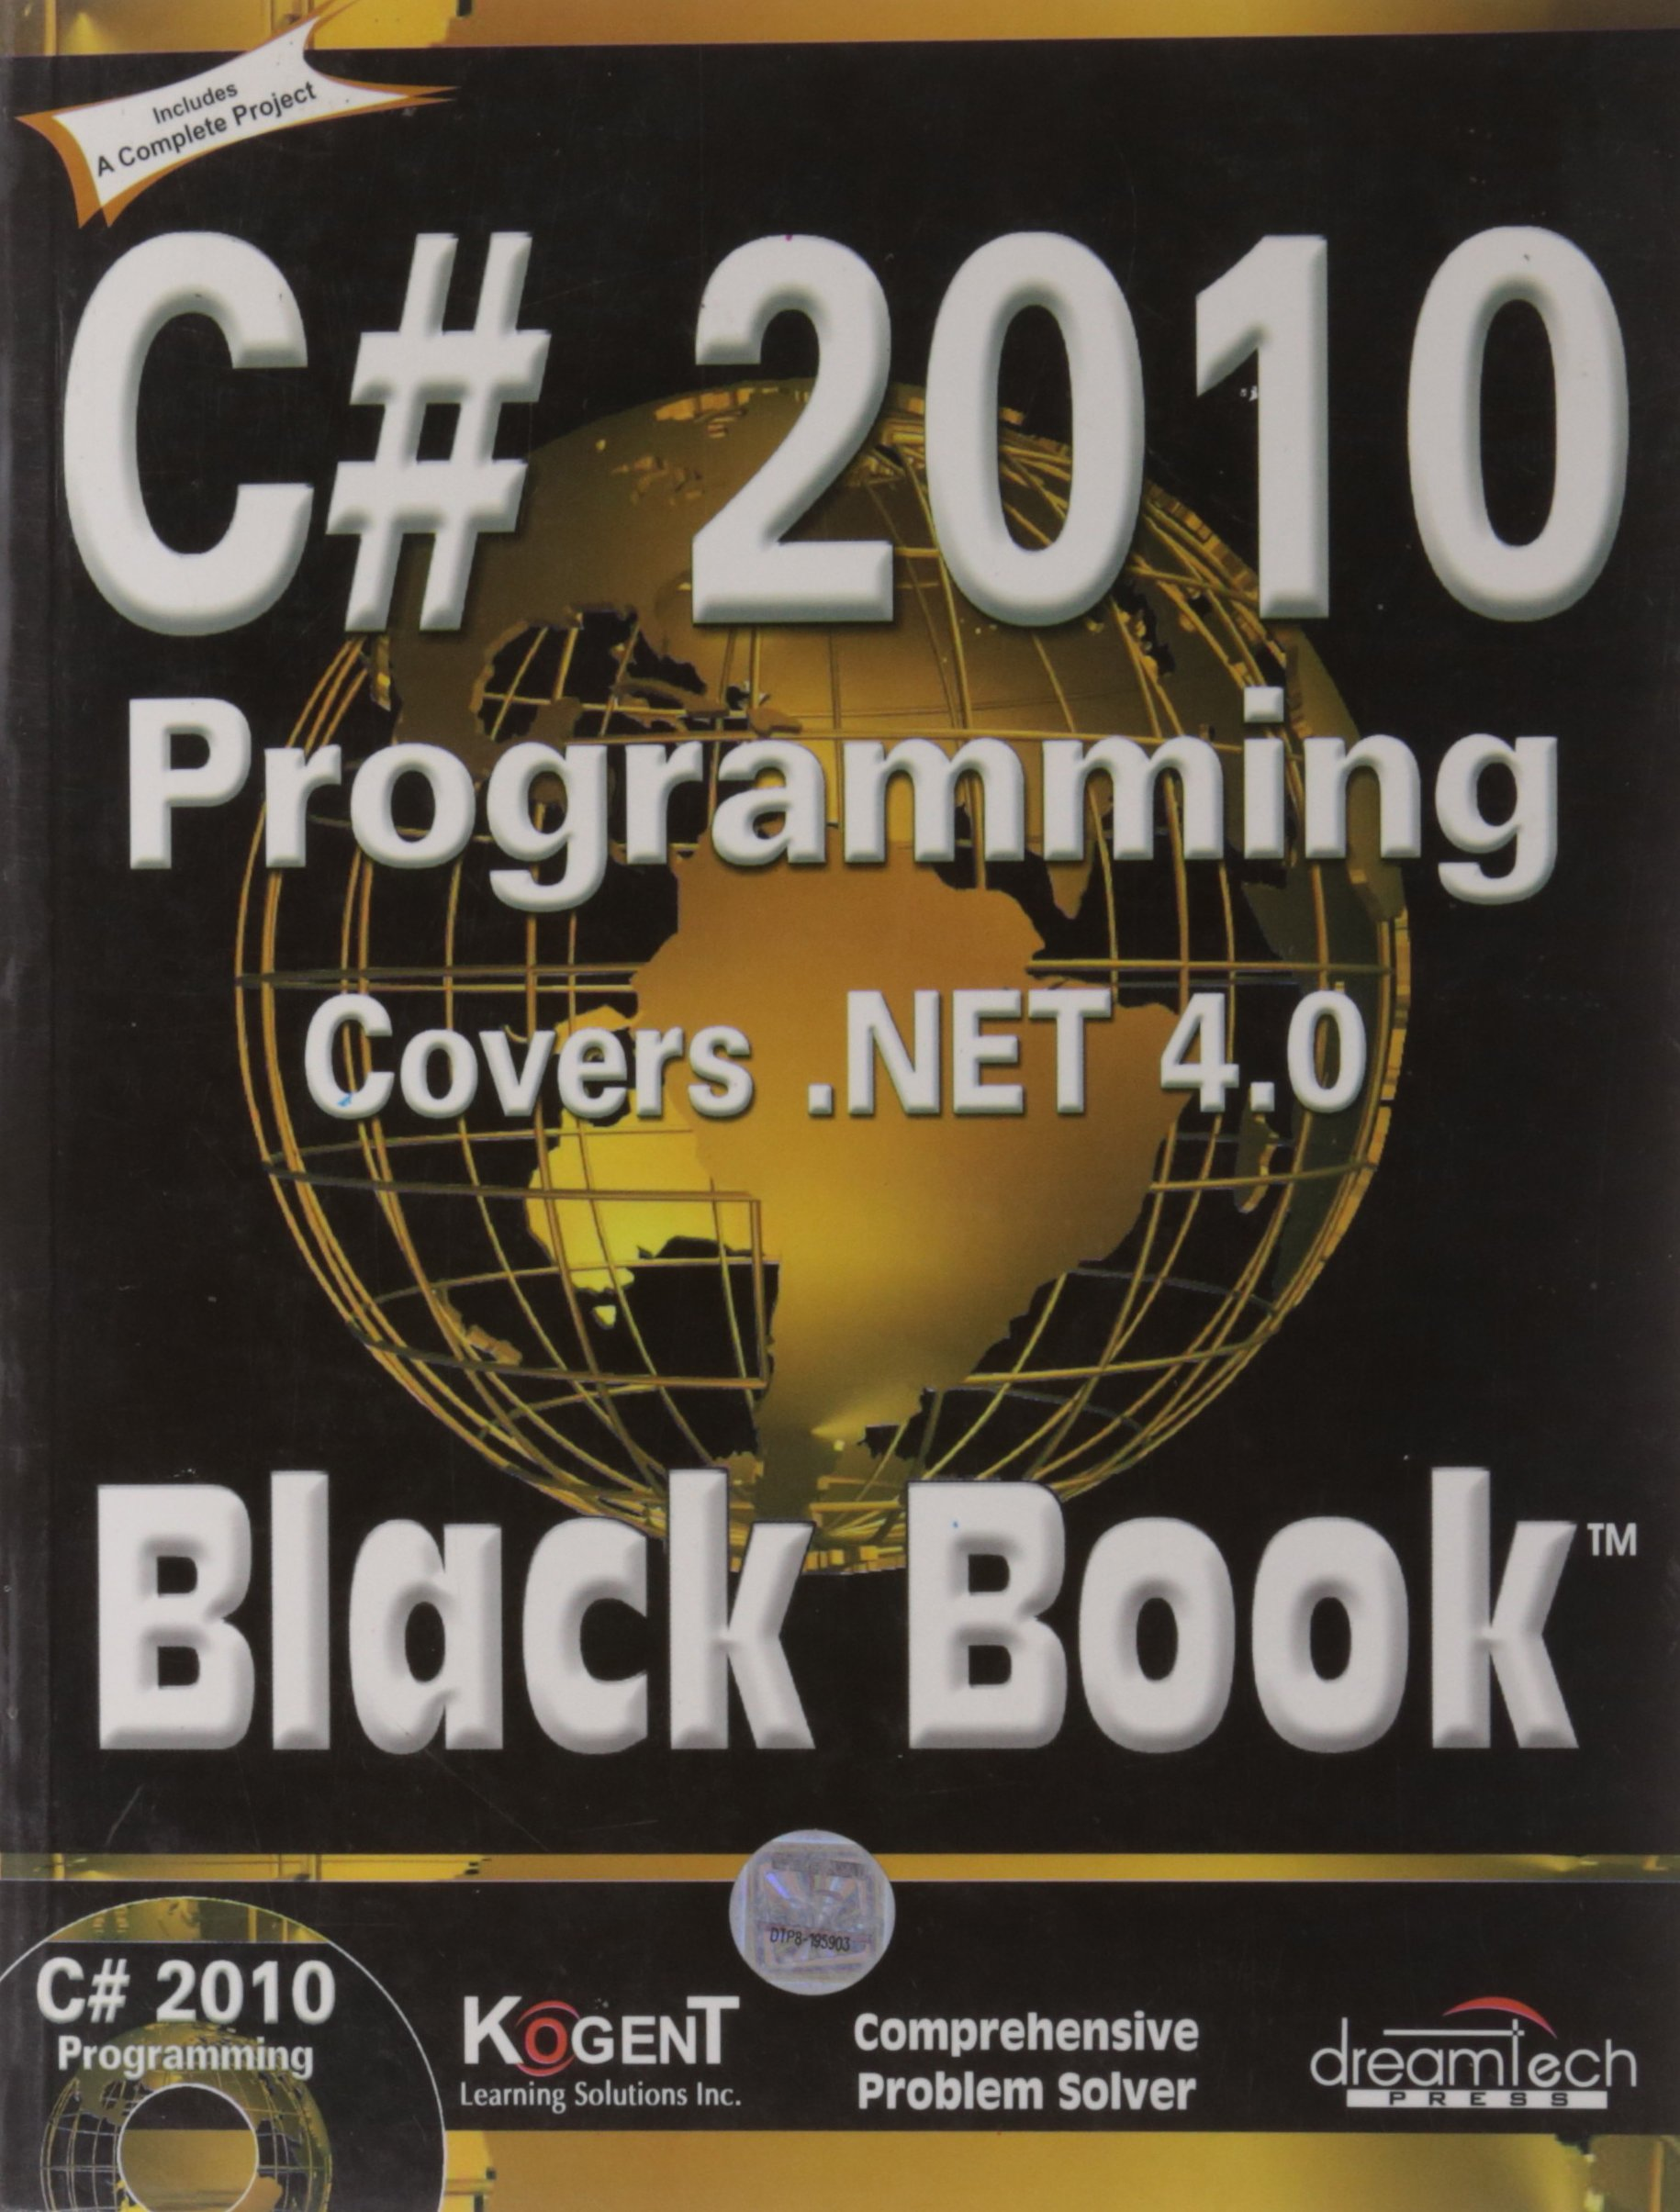 net 4.0 programming black book pdf free download